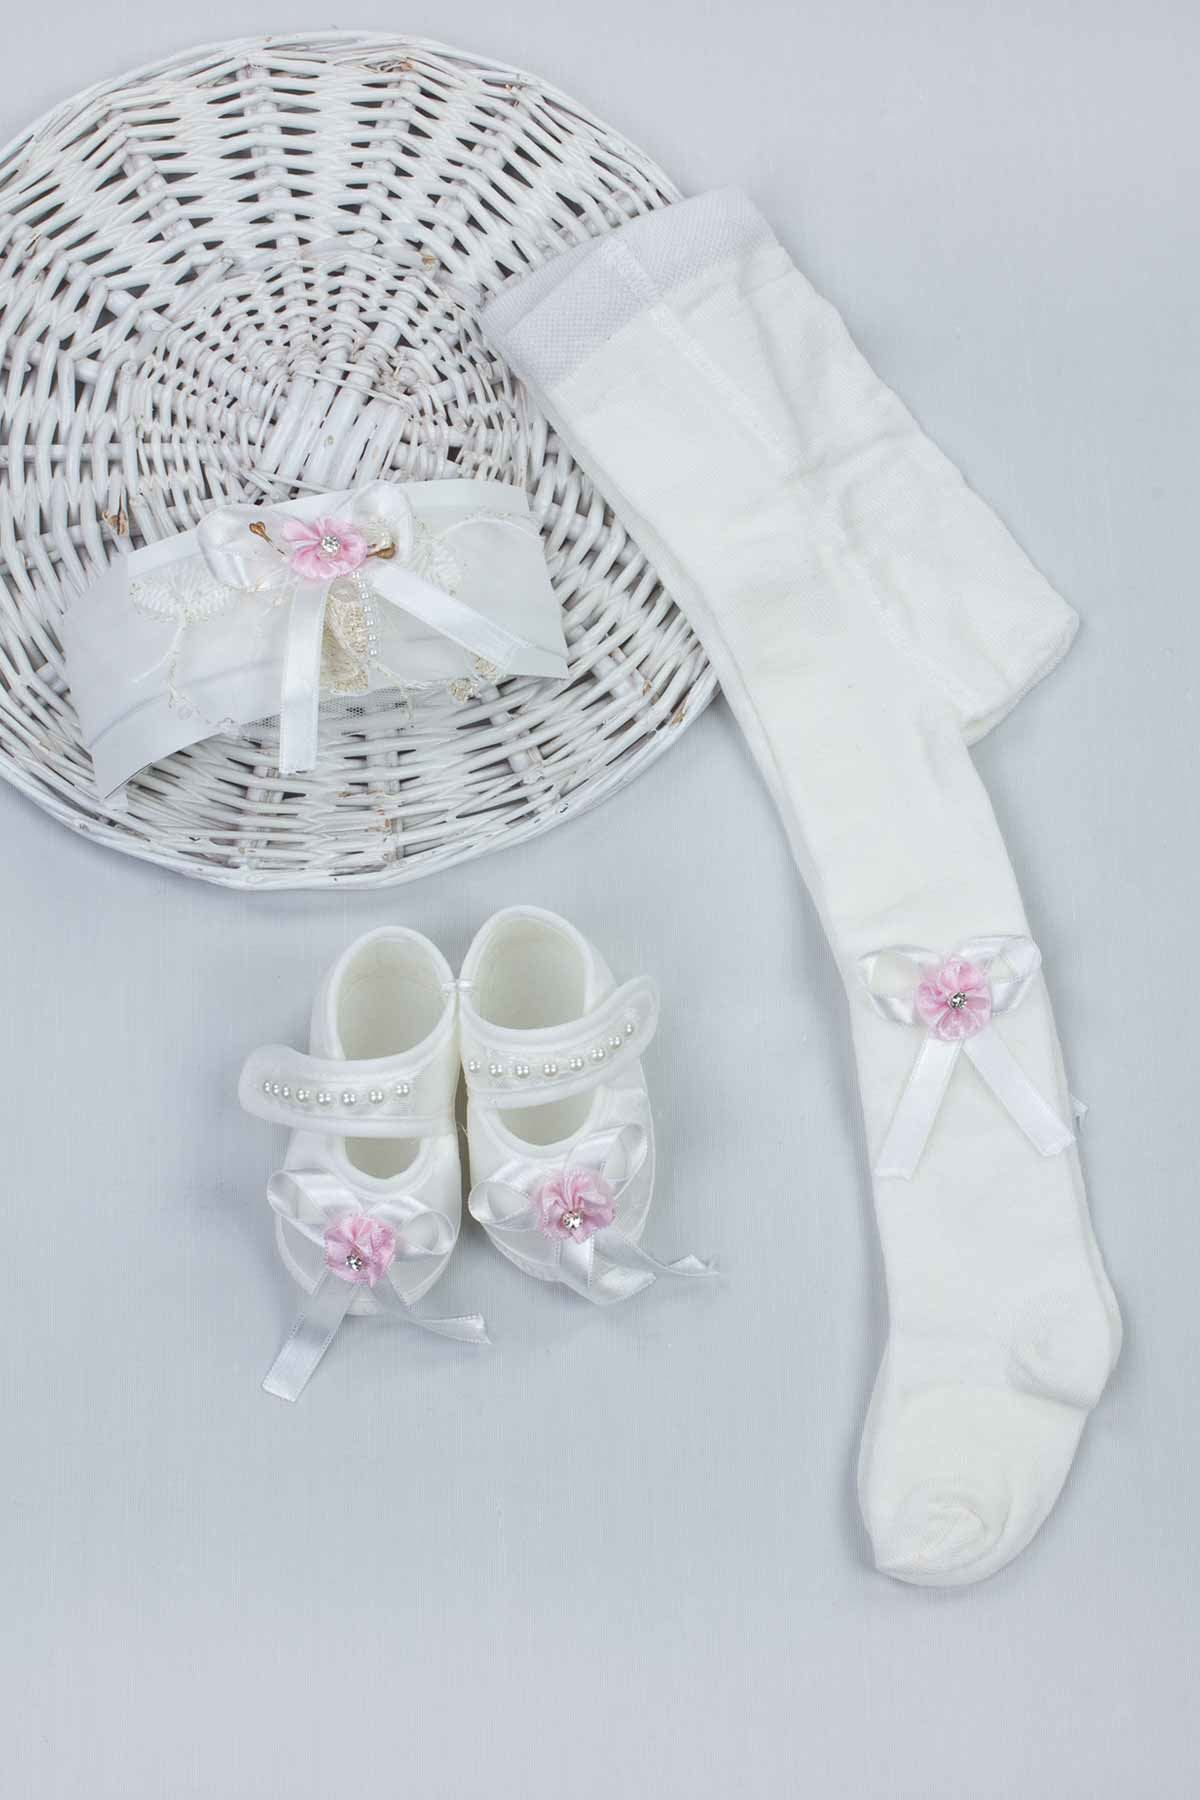 Pink Baby Girl Newborn Gift Suit Set Girls Babies Tights Stockings Hair Bandana Shoes Fashion Style 2021 Mom Gift Package models